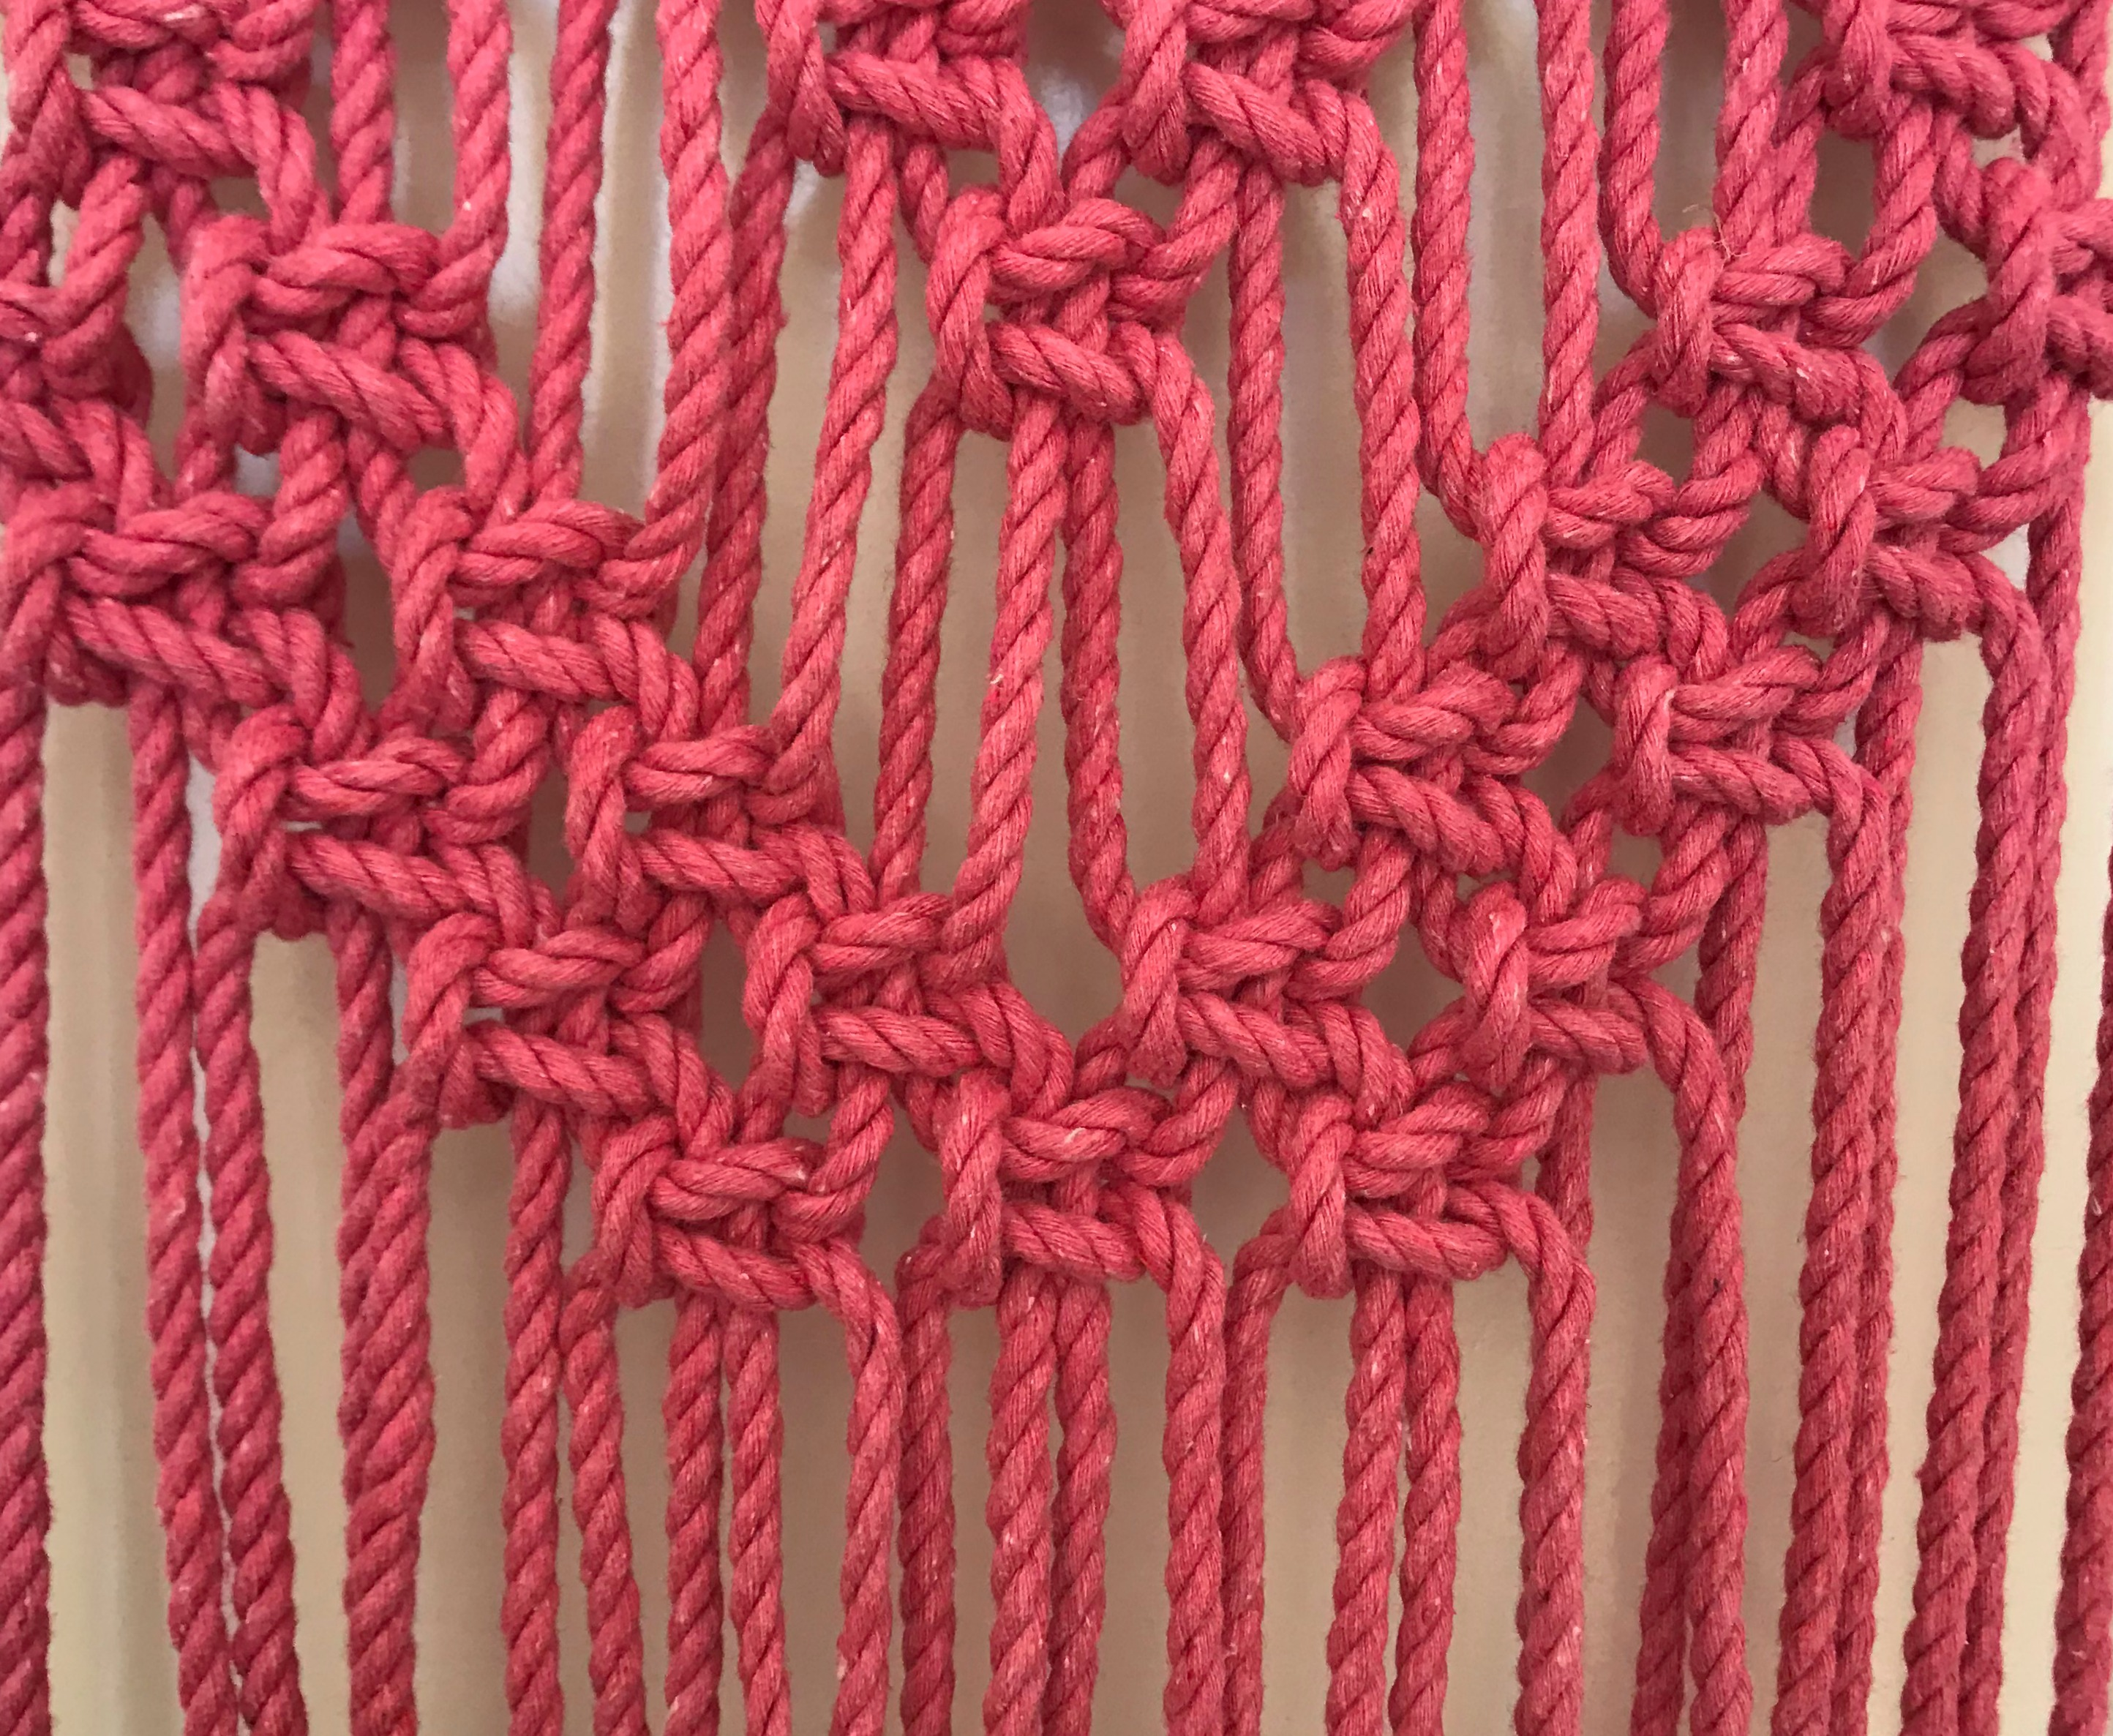 Macrame Alternating Square Knot Diagrams Trusted Wiring Diagram Heart Wall Hanging My French Twist